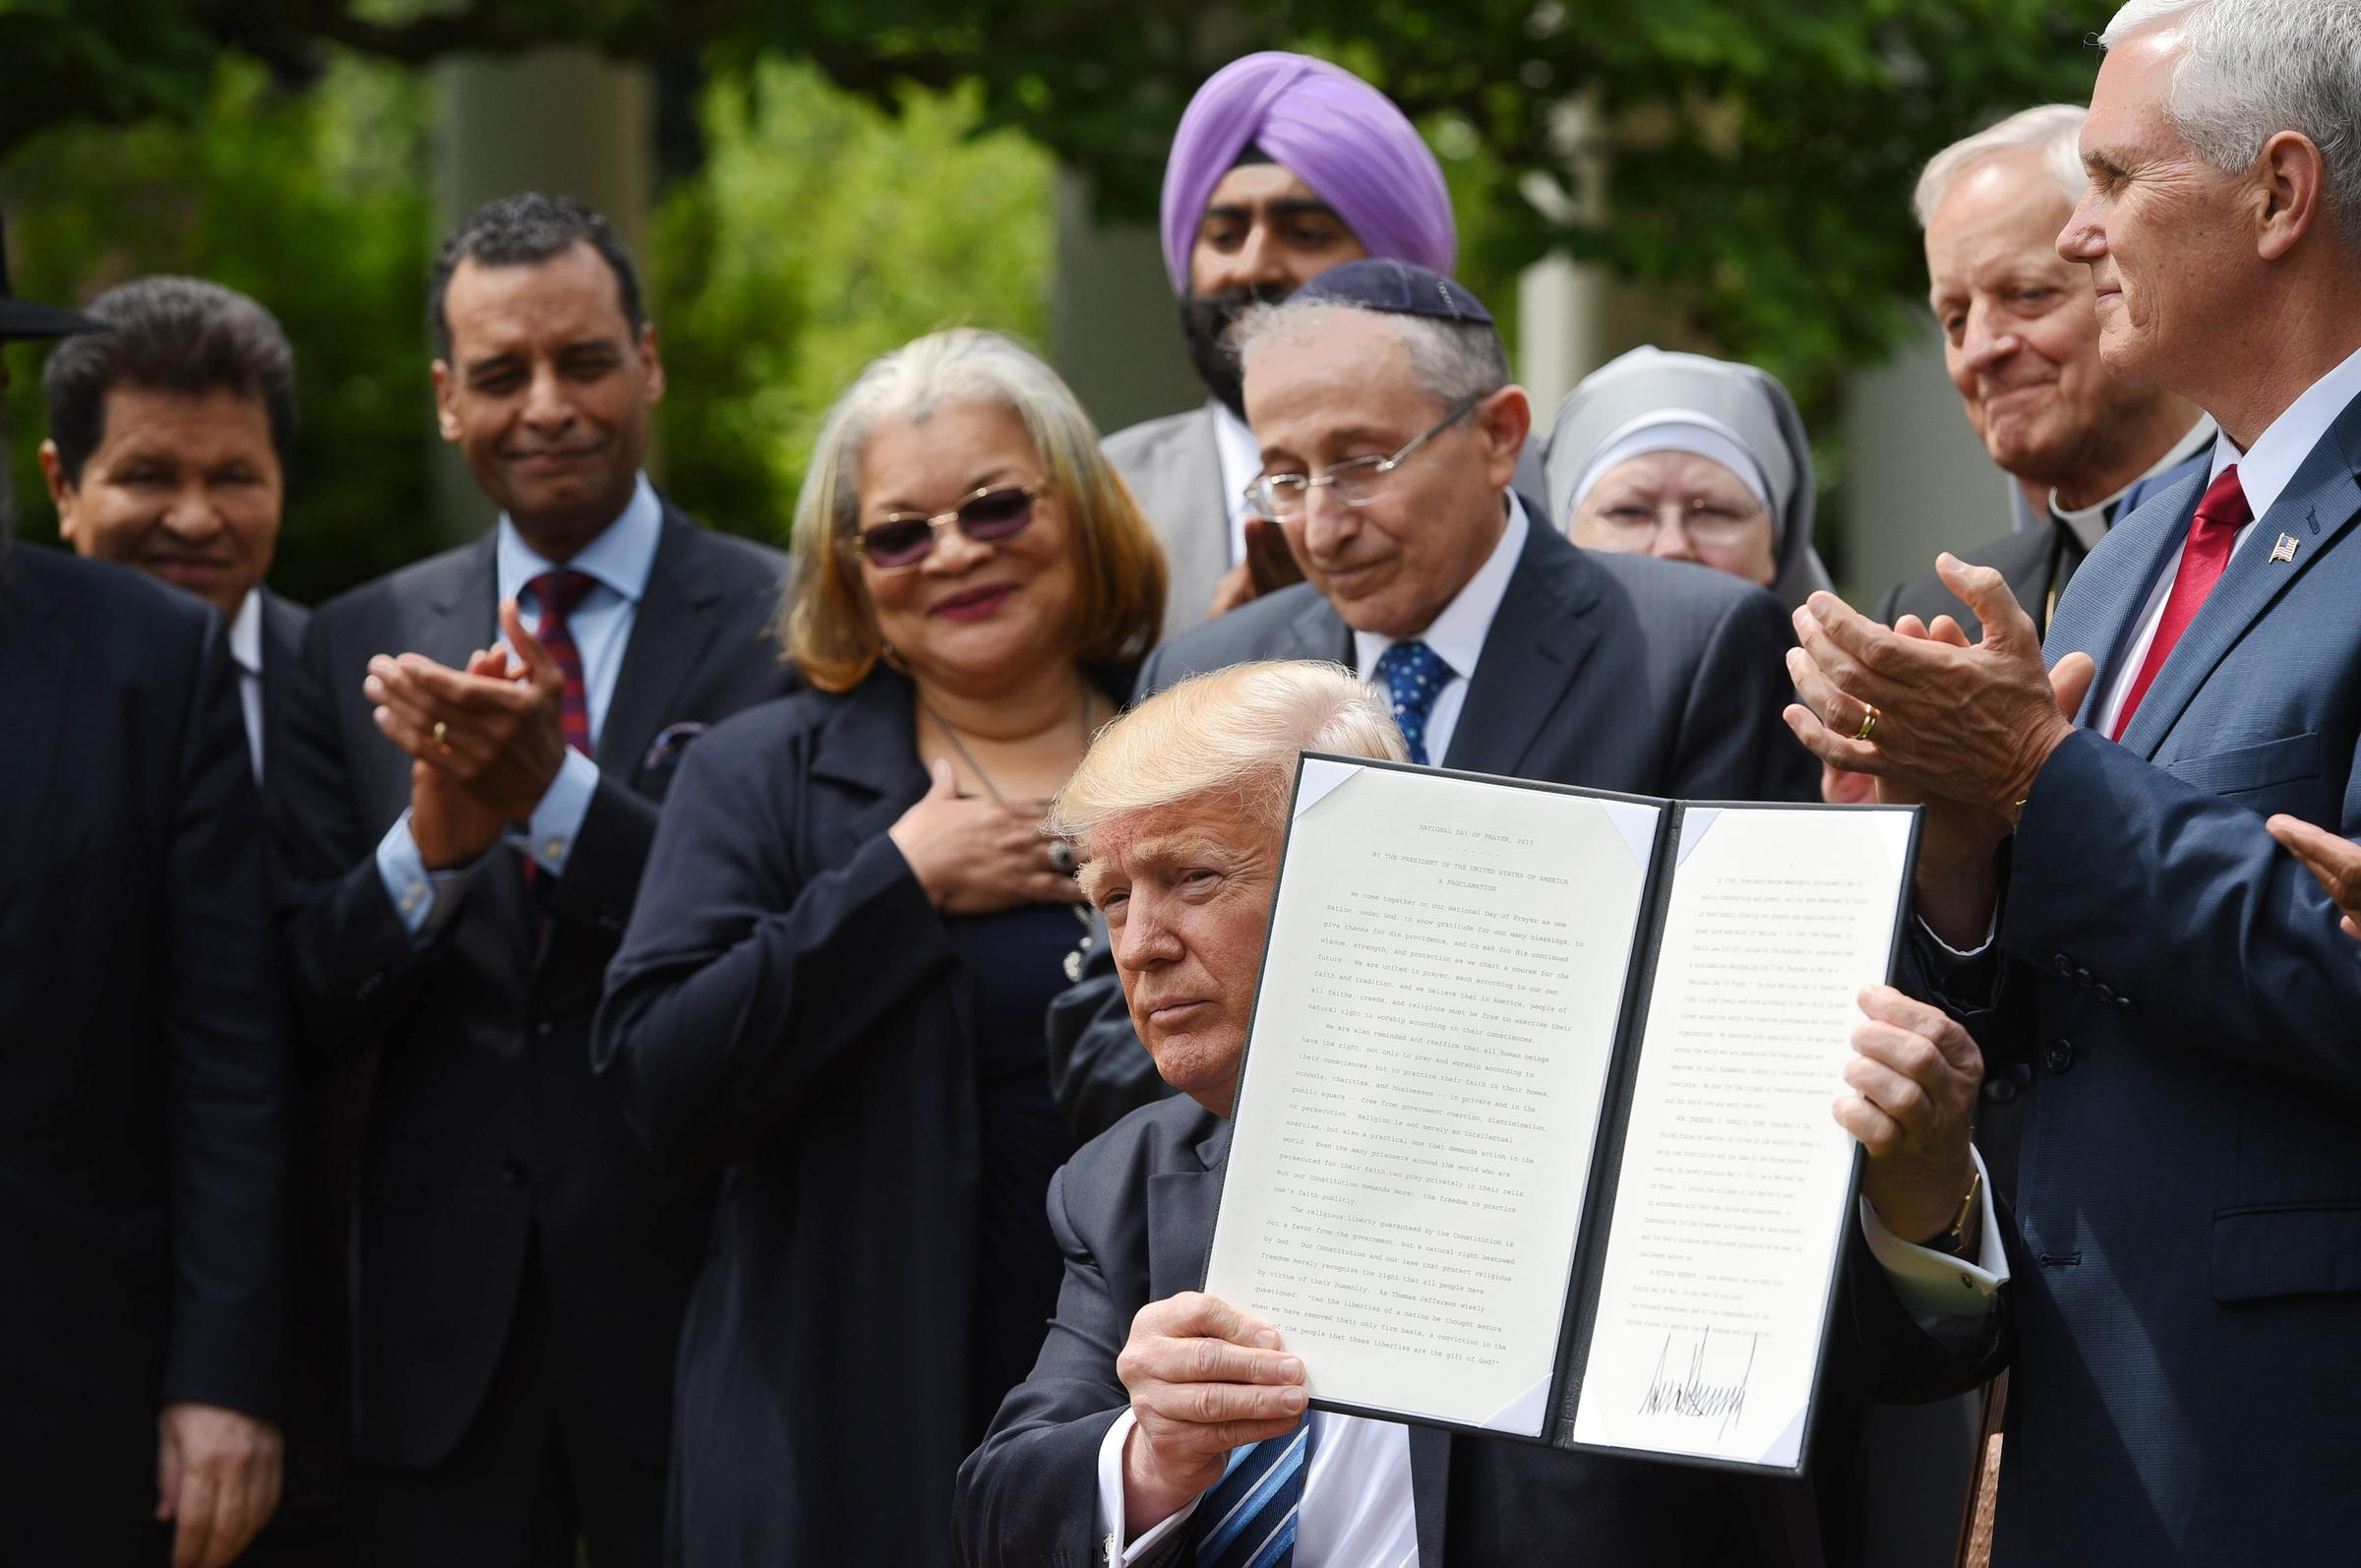 Donald Trump signs executive order promoting free speech and religious liberty